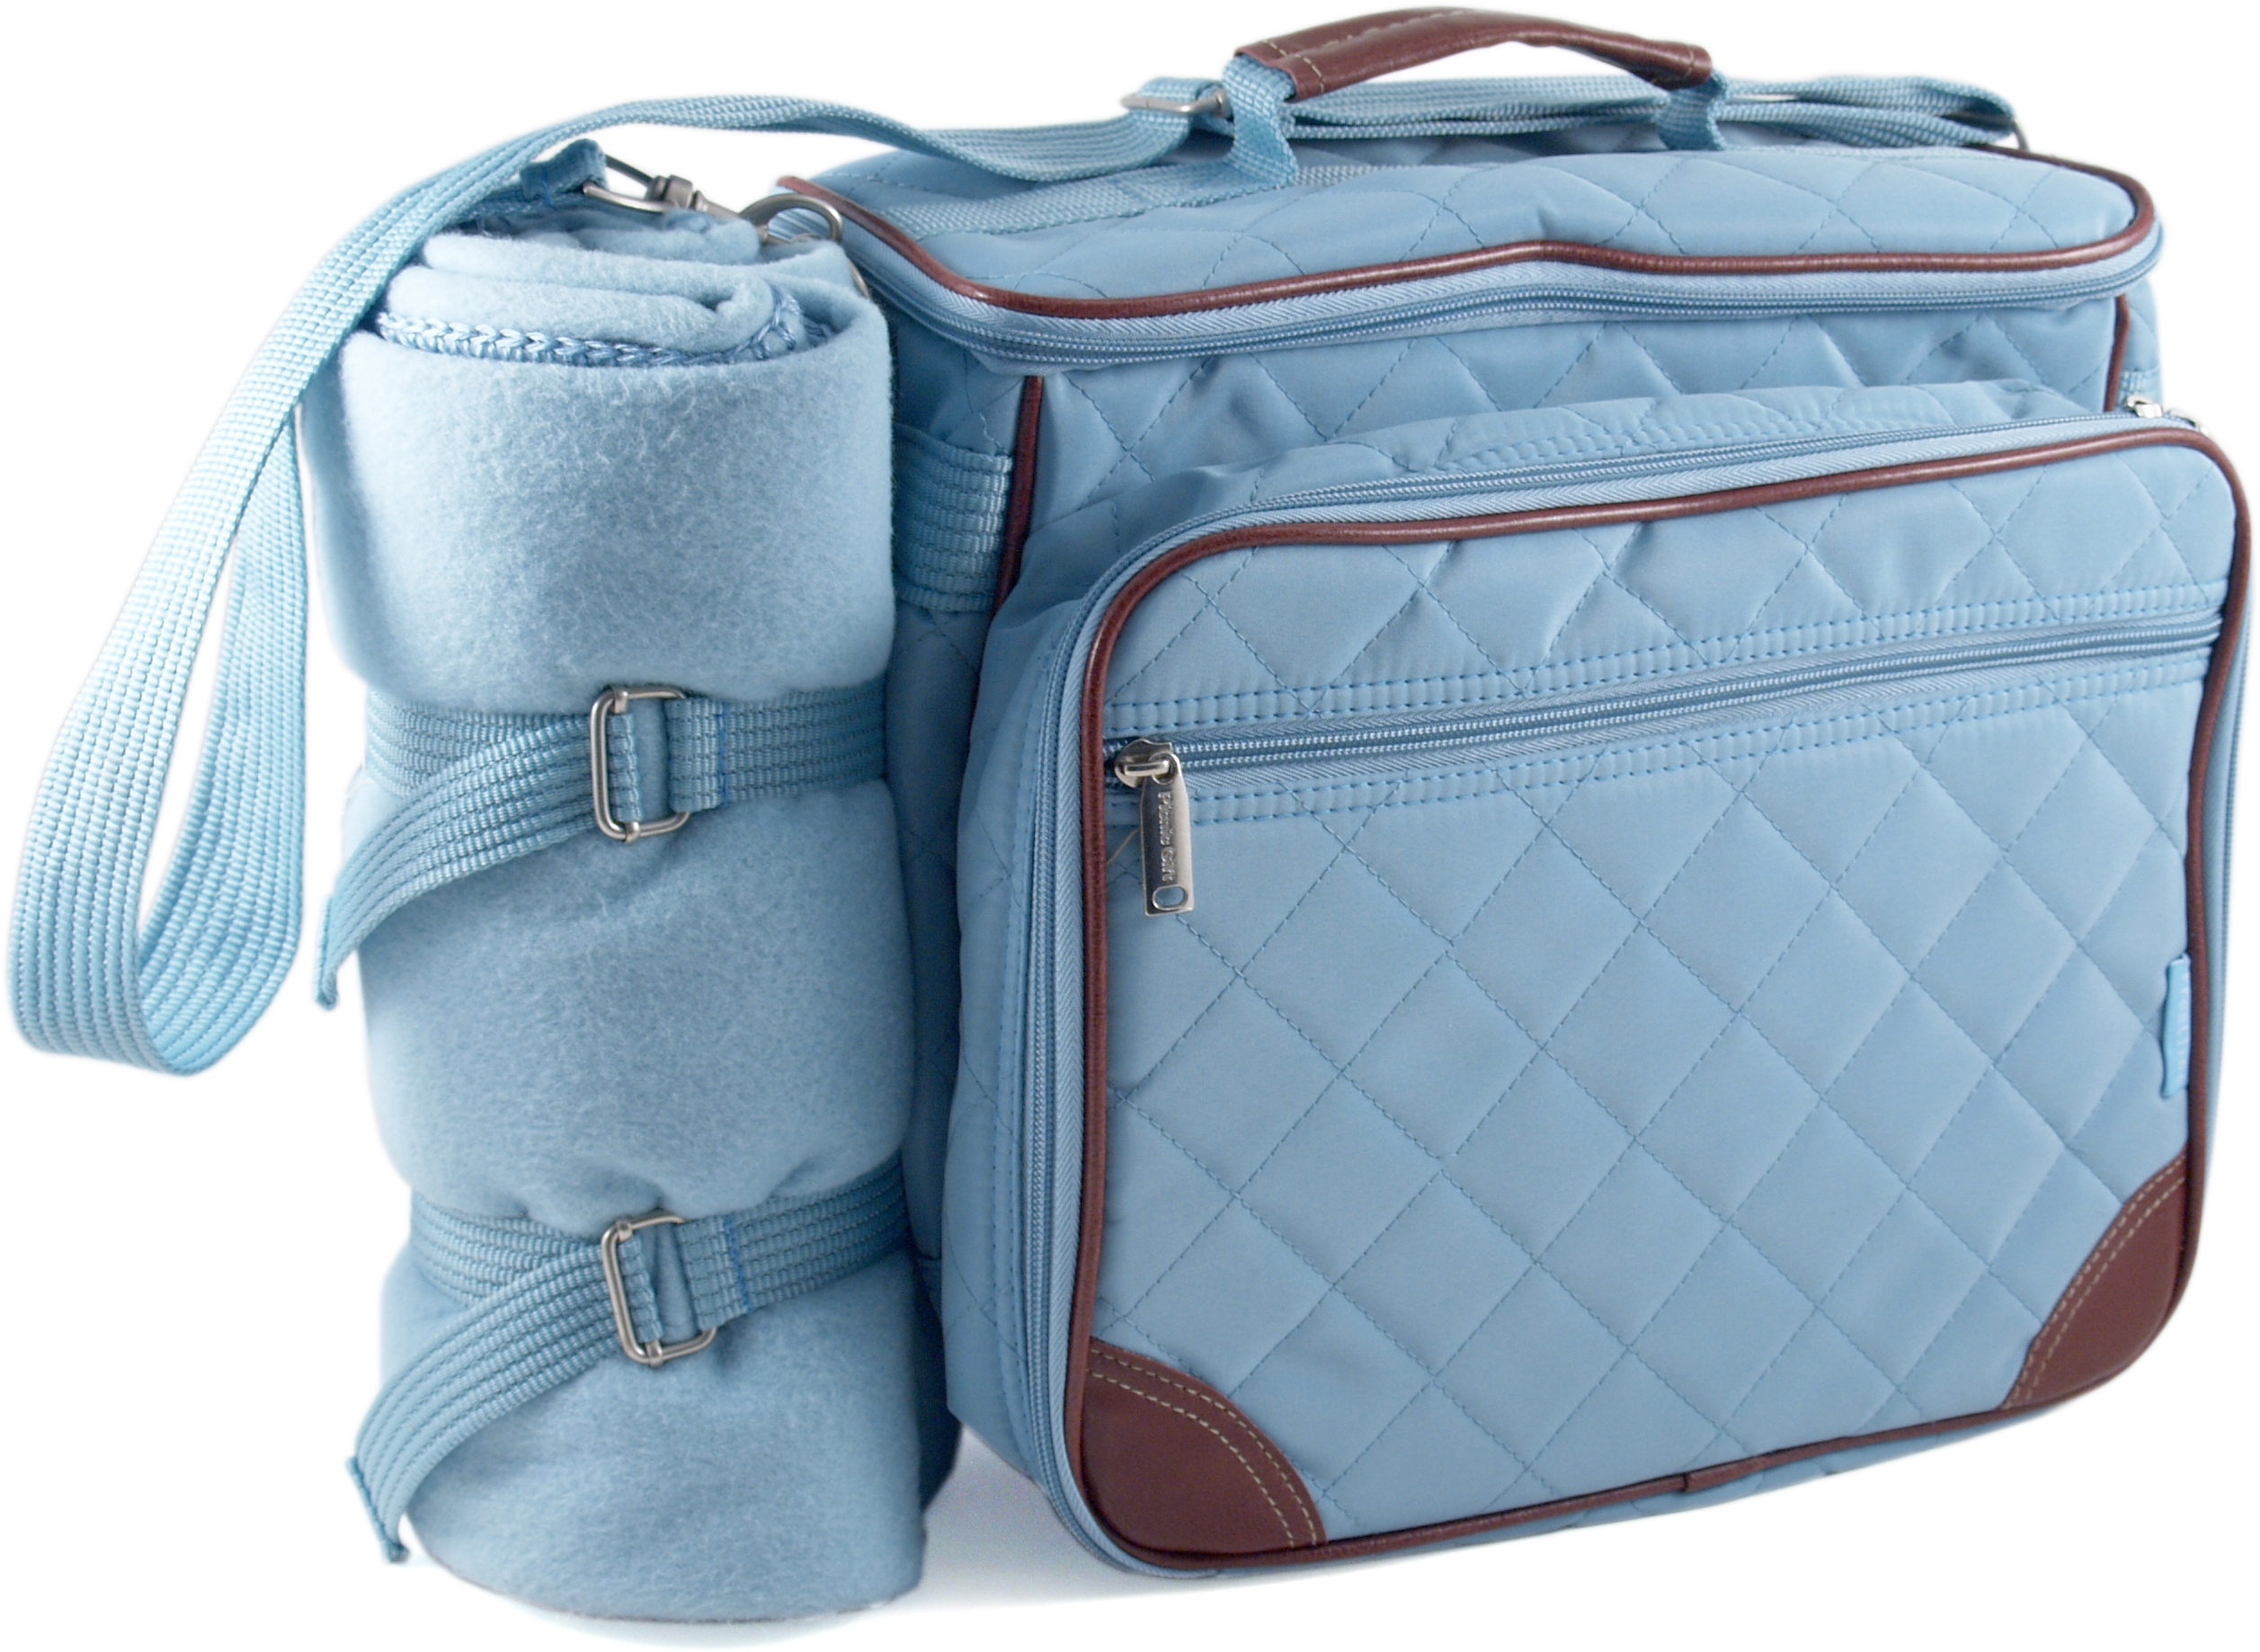 baby boo blue deluxe insulated diaper bag. Black Bedroom Furniture Sets. Home Design Ideas